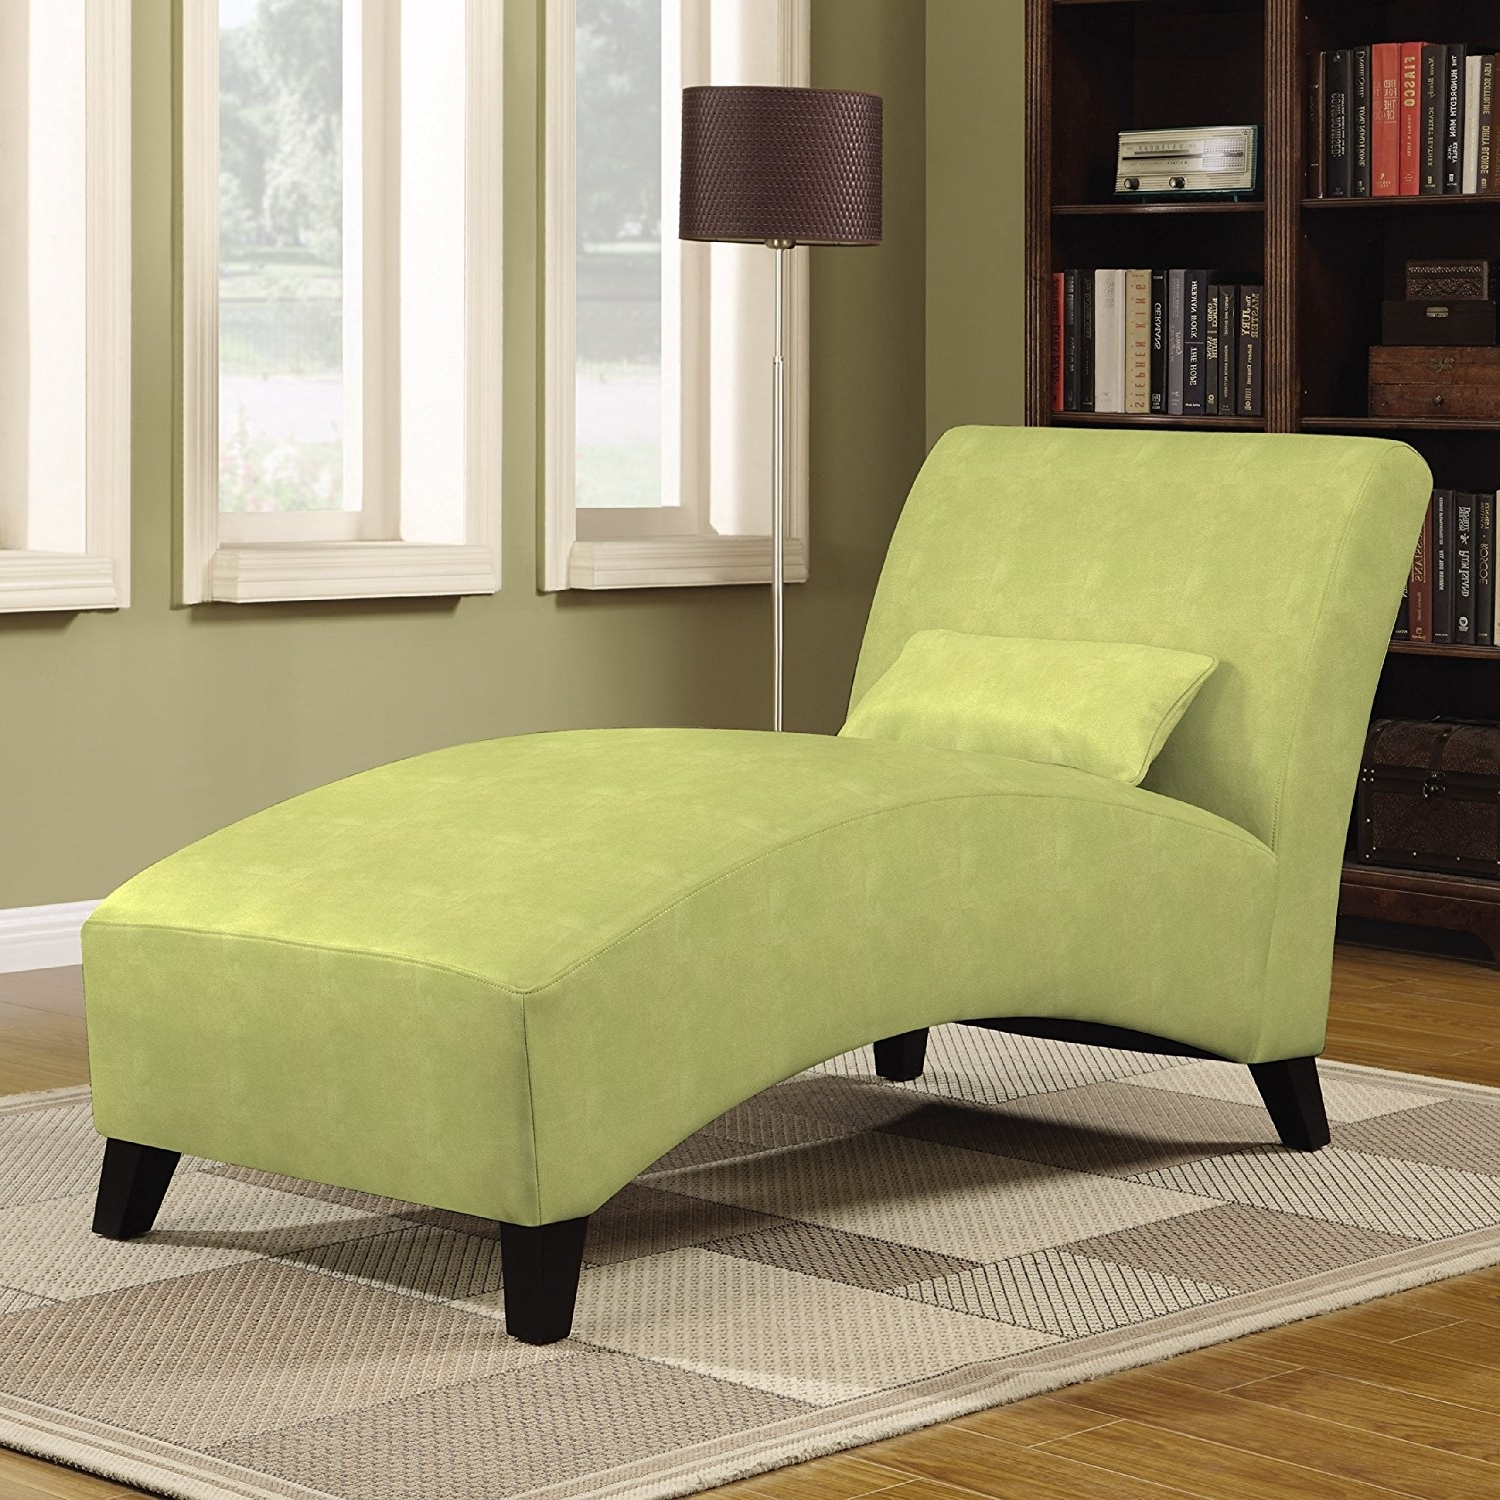 Amazon: Handy Living Chaise Lounge Chair, Gecko Green: Kitchen Regarding Most Up To Date Curved Chaise Lounges (View 13 of 15)